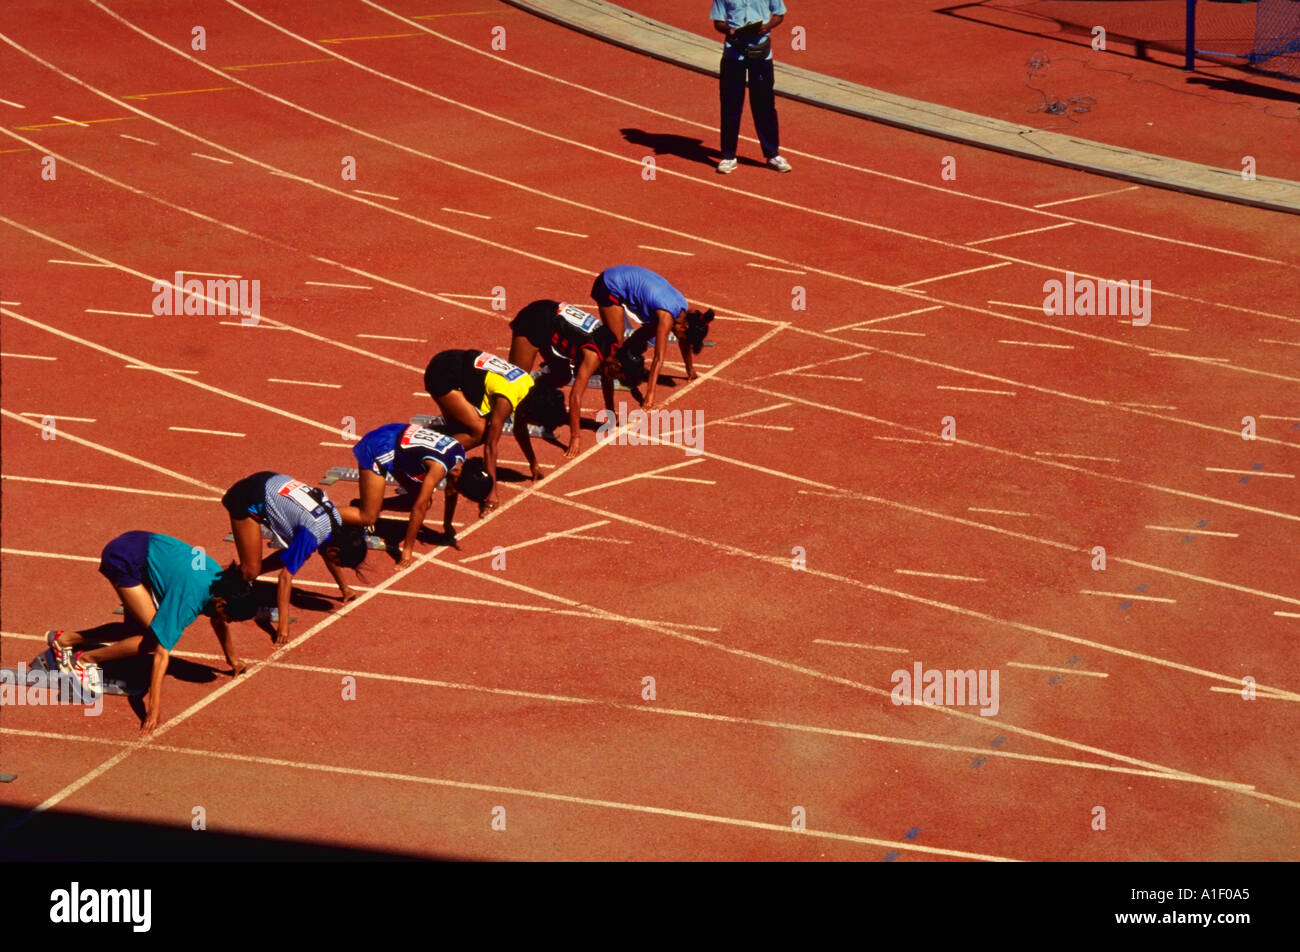 group of runners in starting position at starting line on track